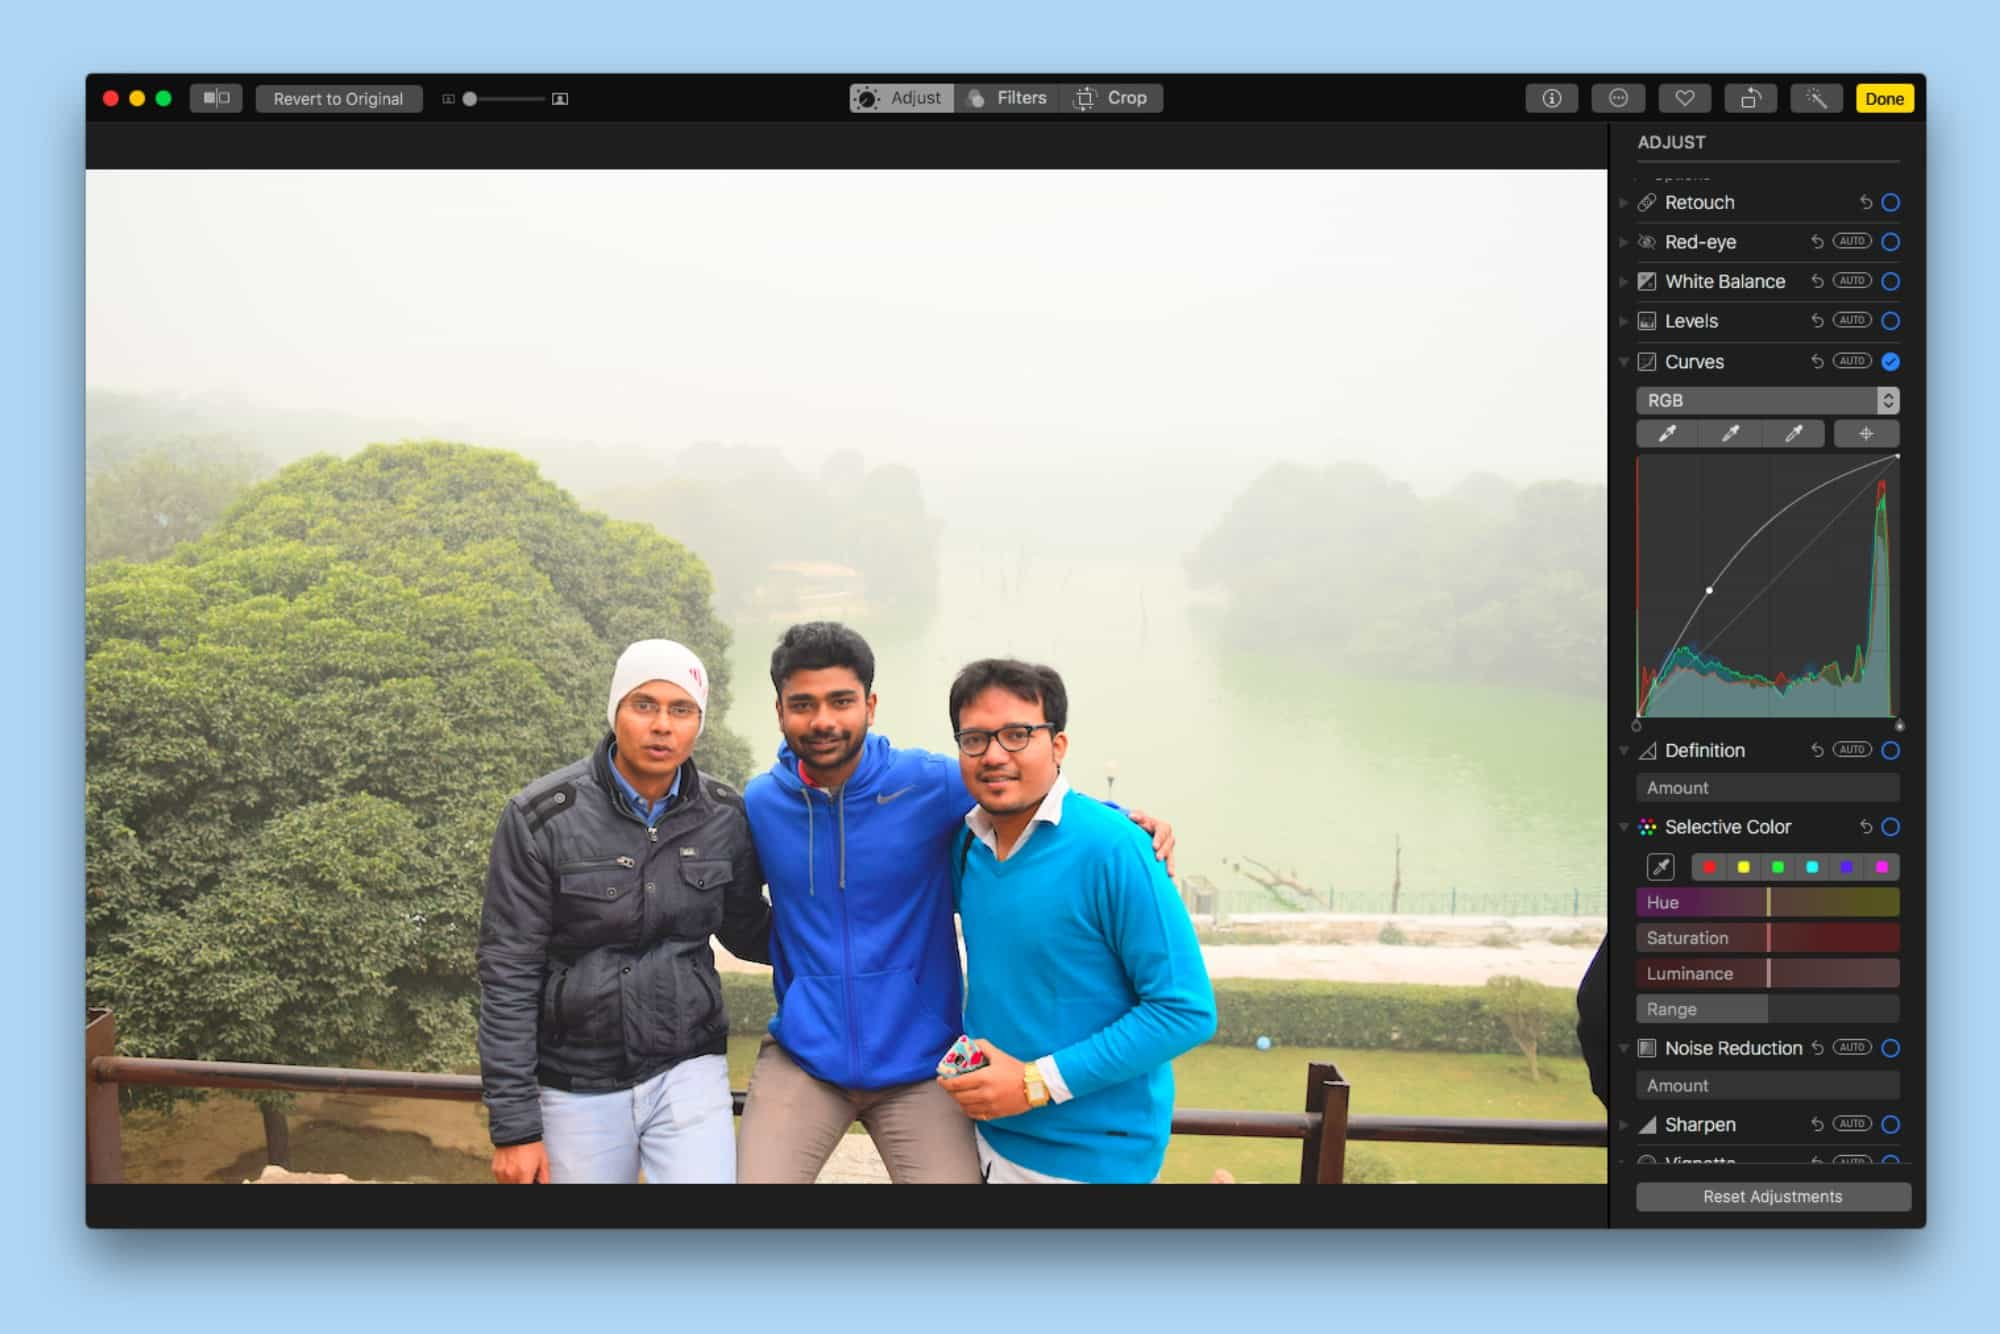 new editing tools in Photos